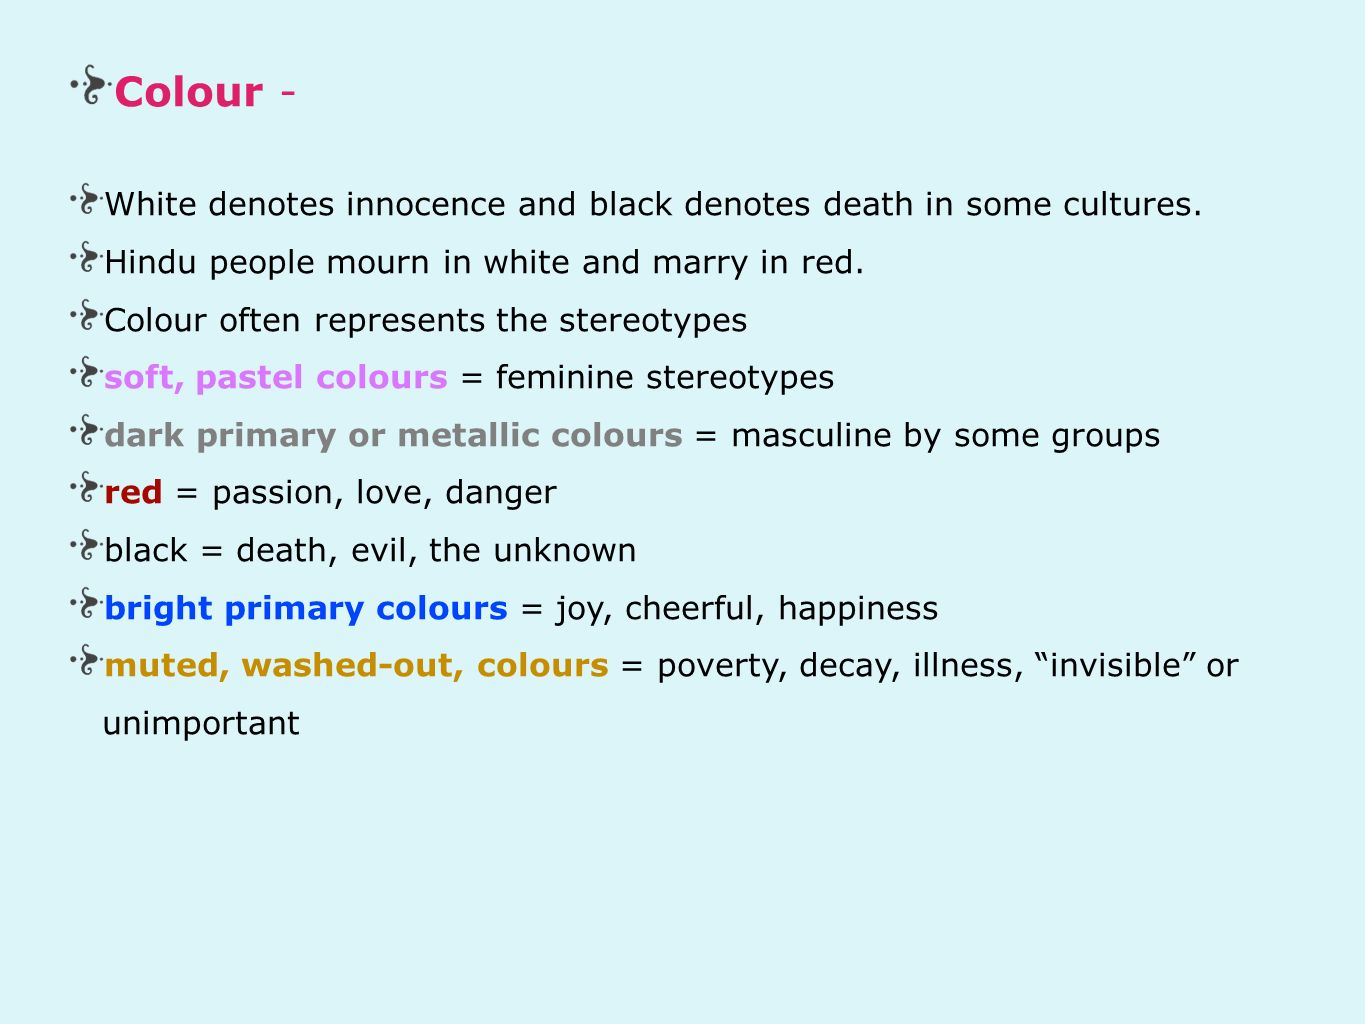 Colour - White denotes innocence and black denotes death in some cultures.